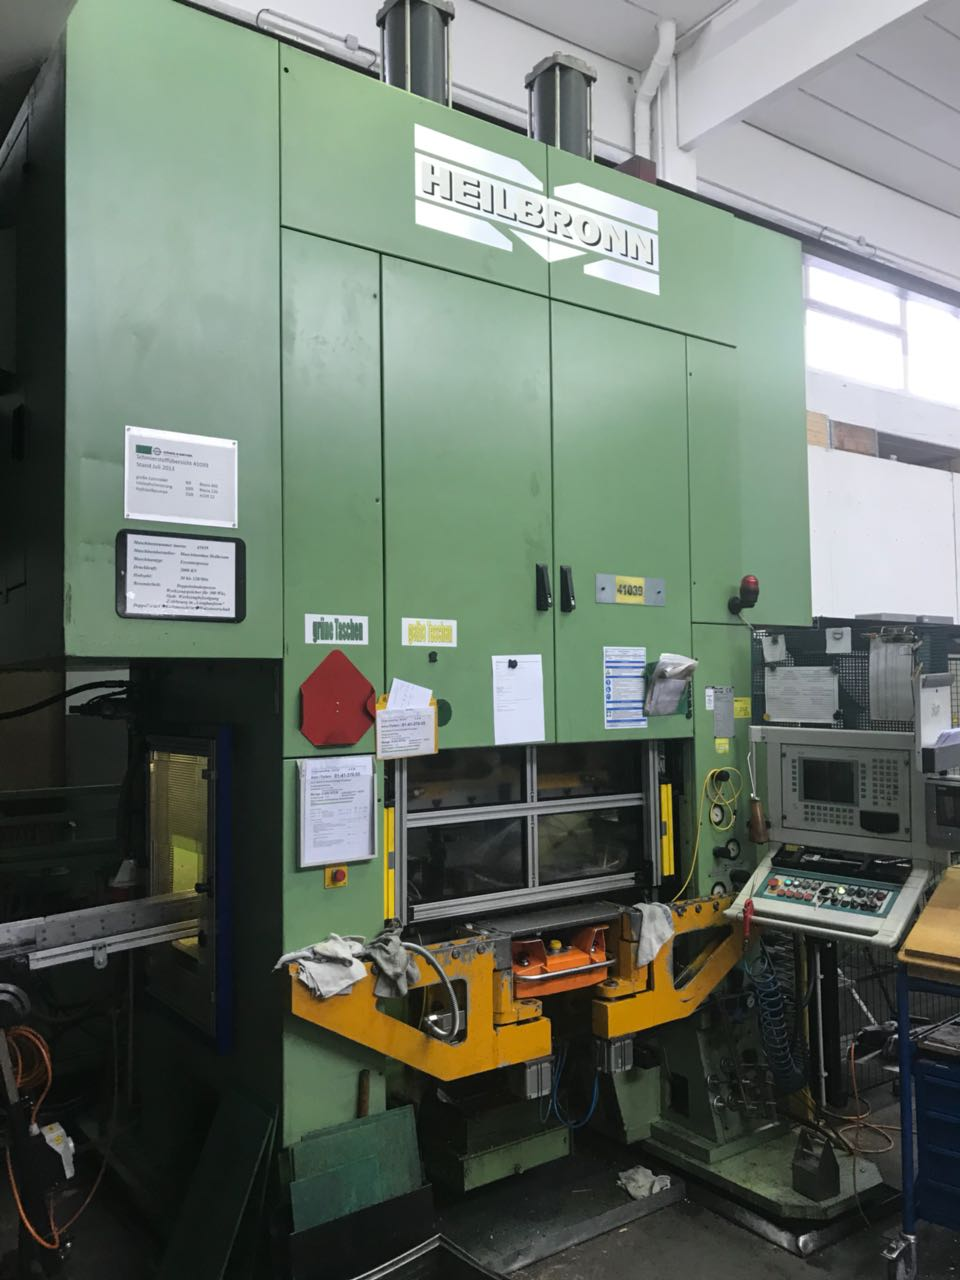 used  double-sided high speed press HEILBRONN REP Z 200 S